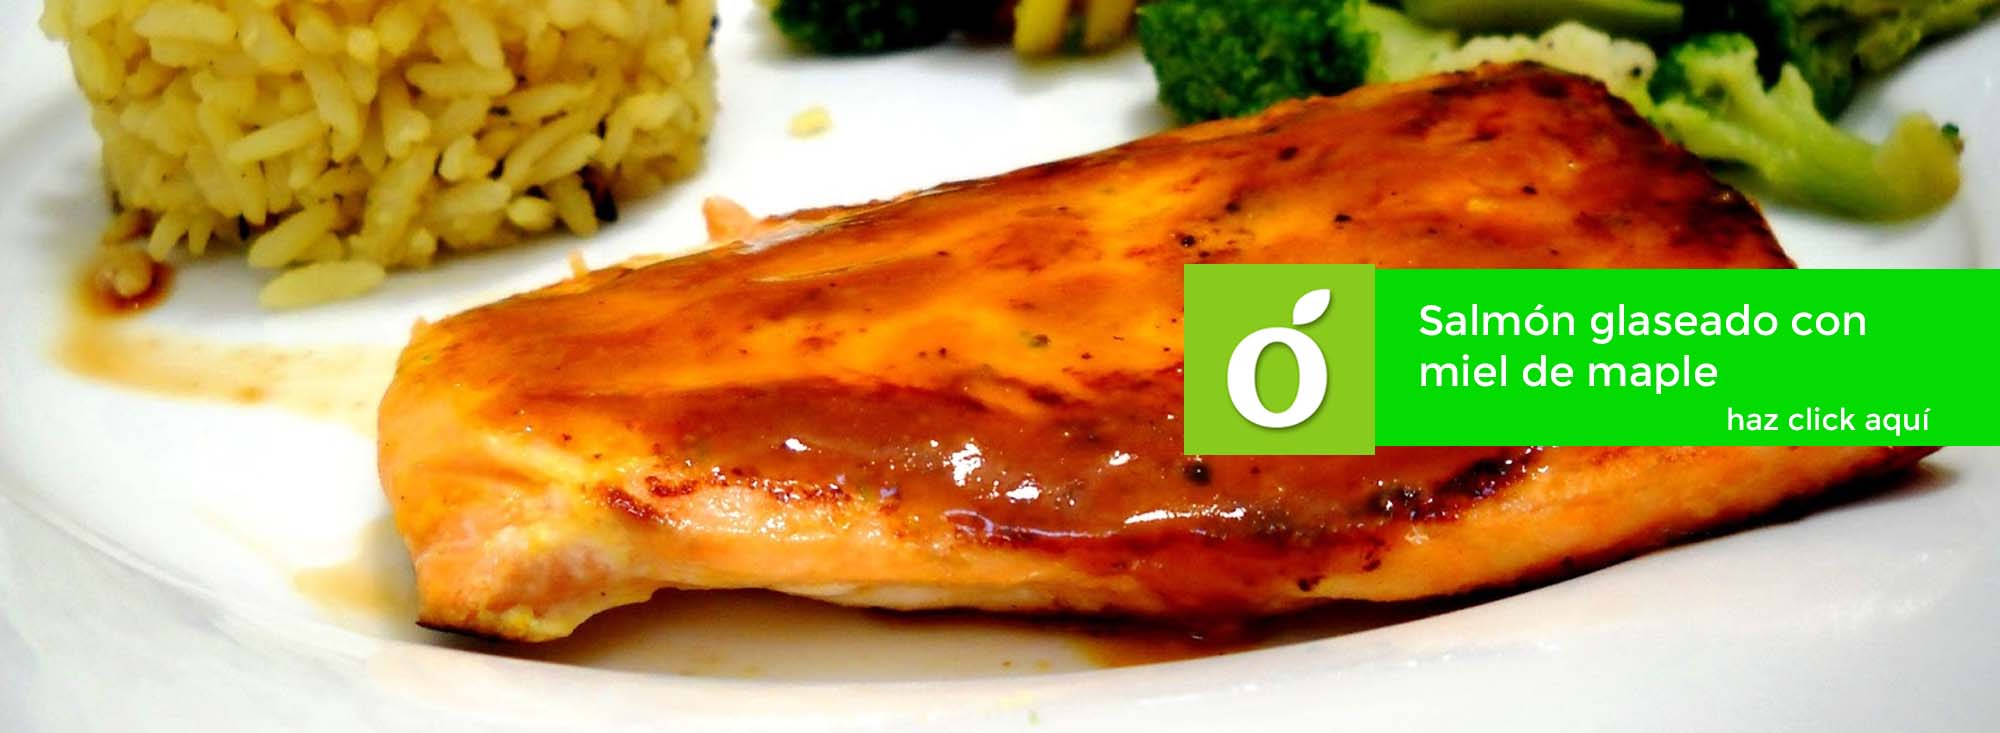 salmon glaseado con miel de maple